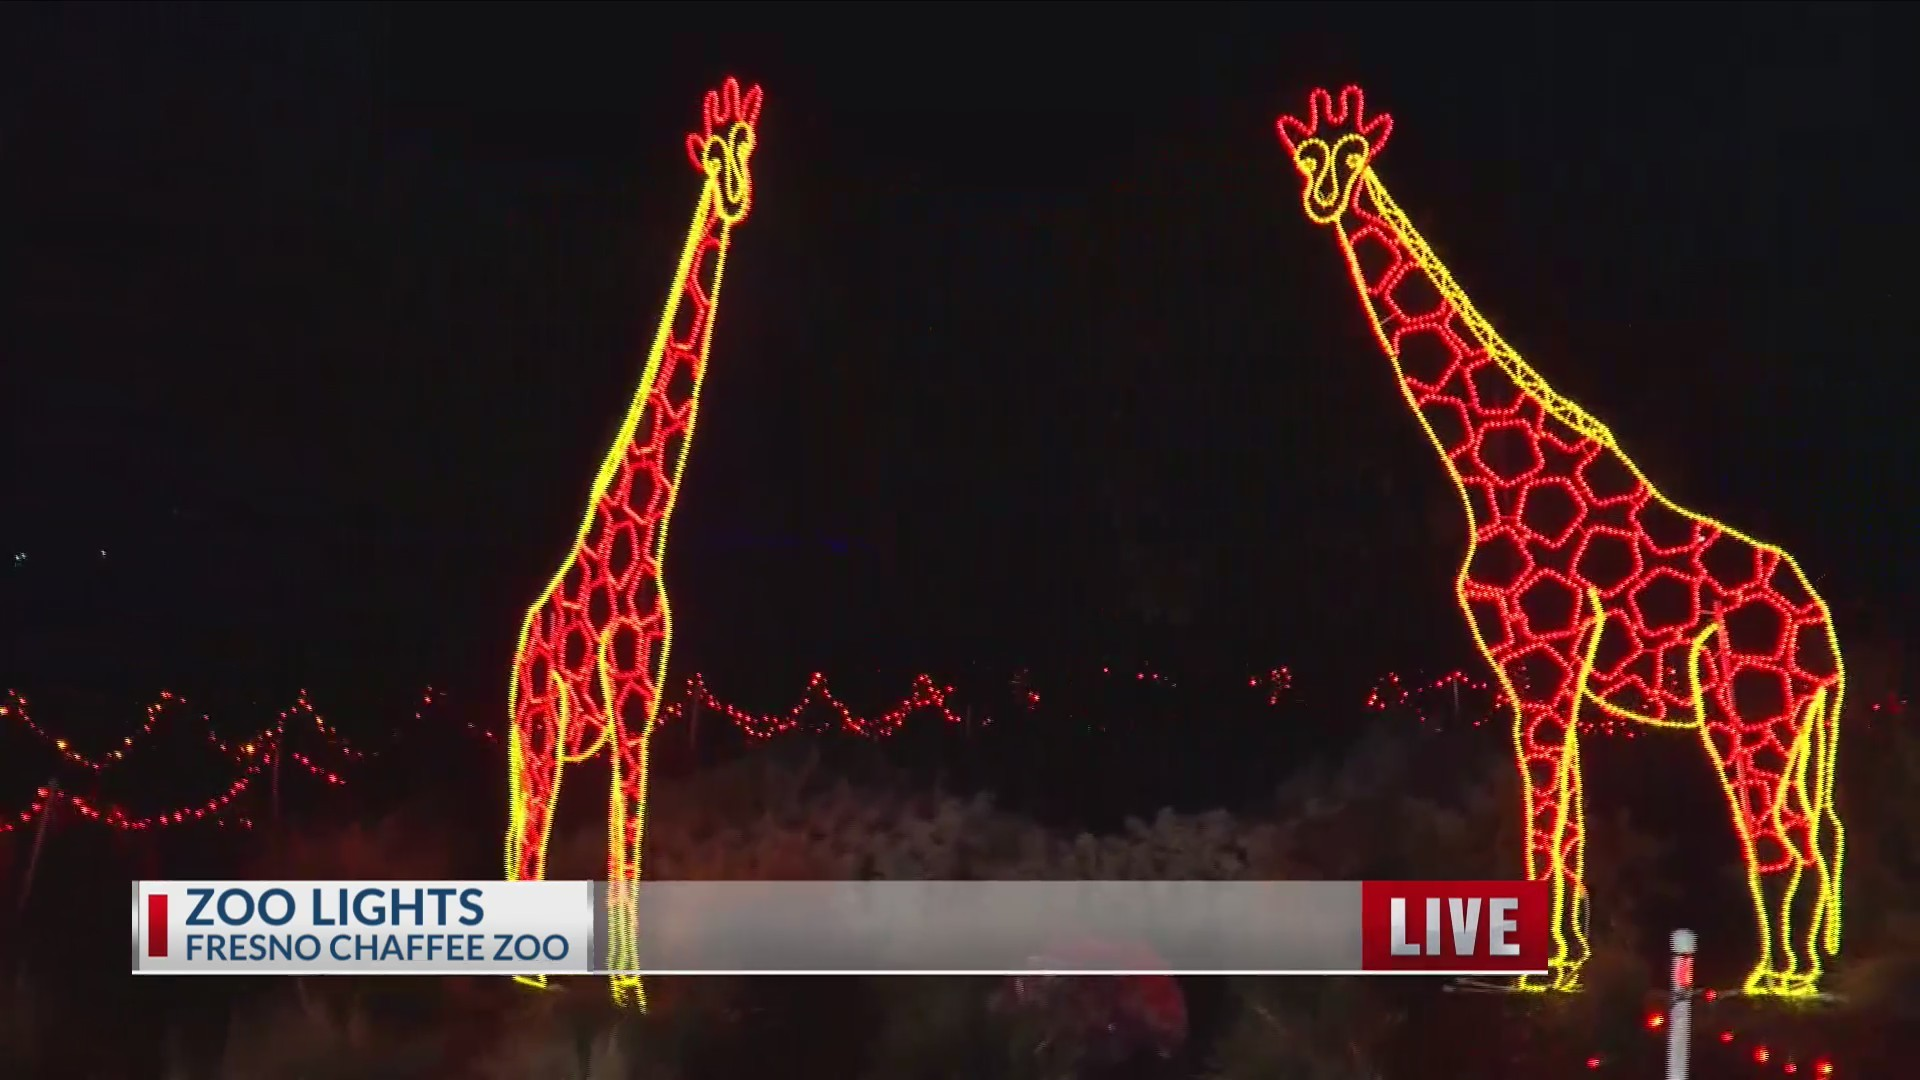 ZooLights_now_open_weeknights_through_Ch_0_20181217172429